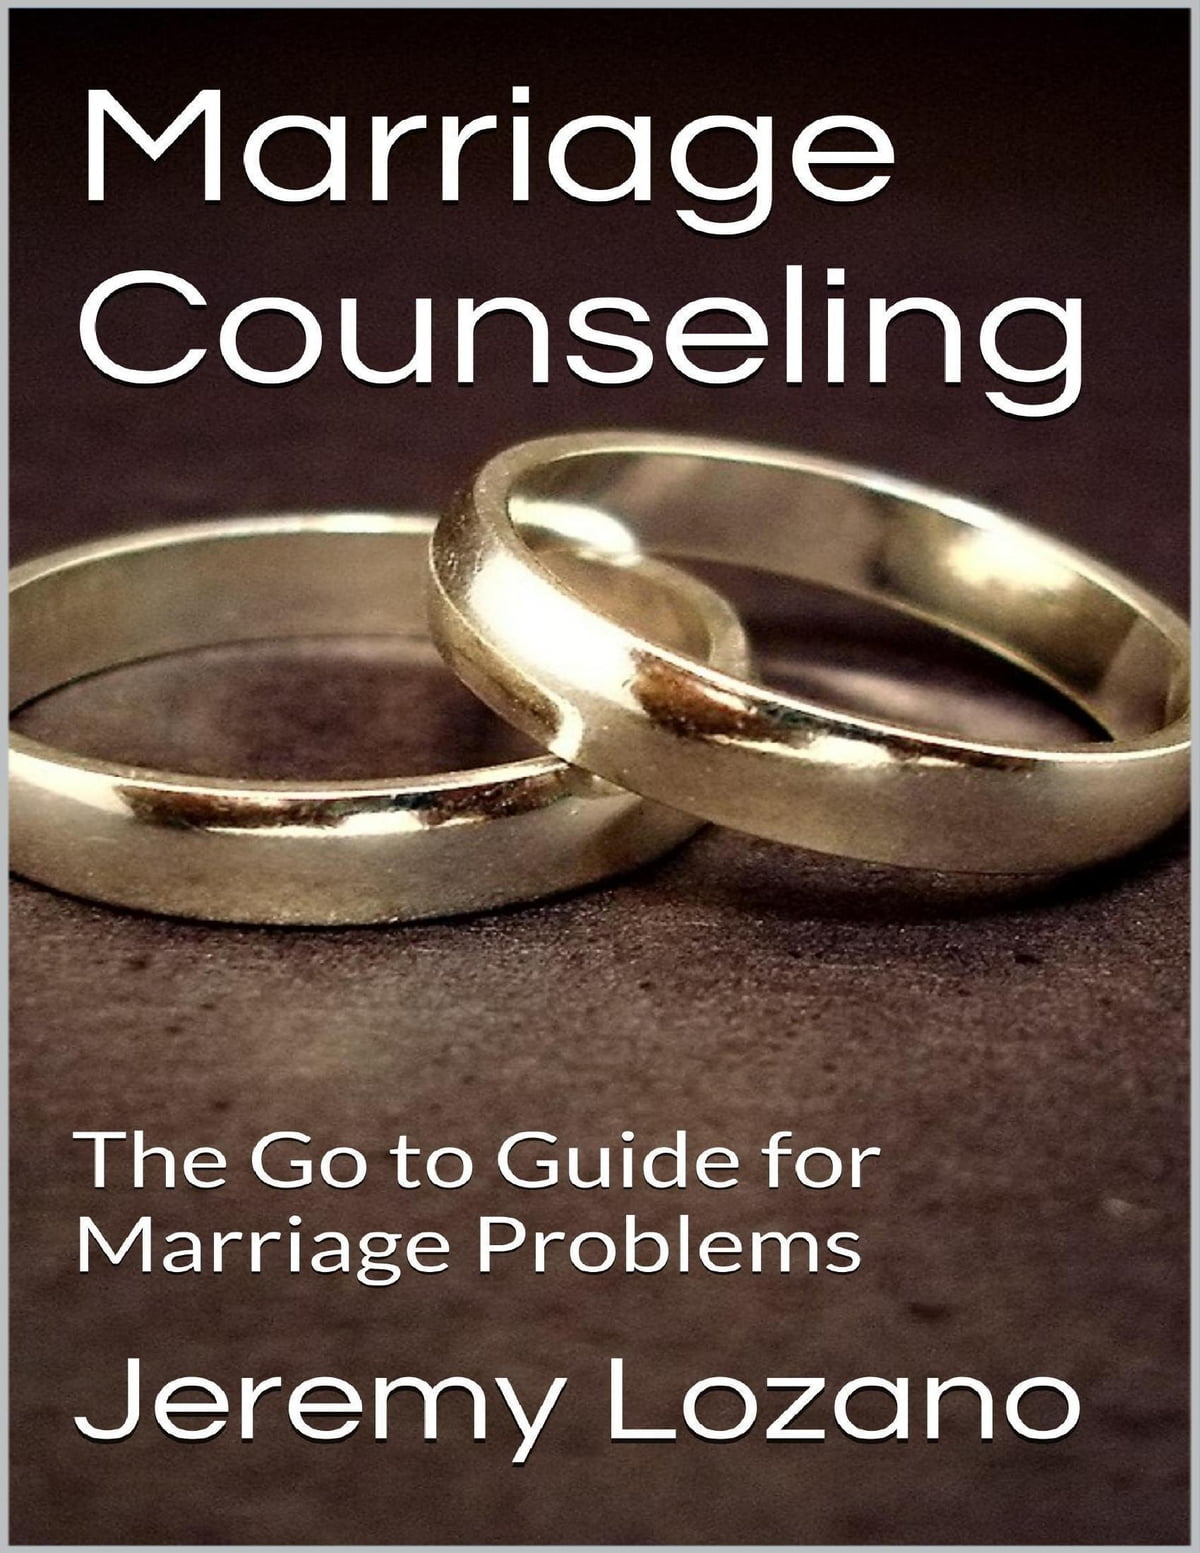 Marriage Counseling The Go To Guide For Marriage Problems Ebook By Jeremy Lozano 9781329555969 Rakuten Kobo Greece She played a critical role in supporting ford during the initial stage of his career. kobo